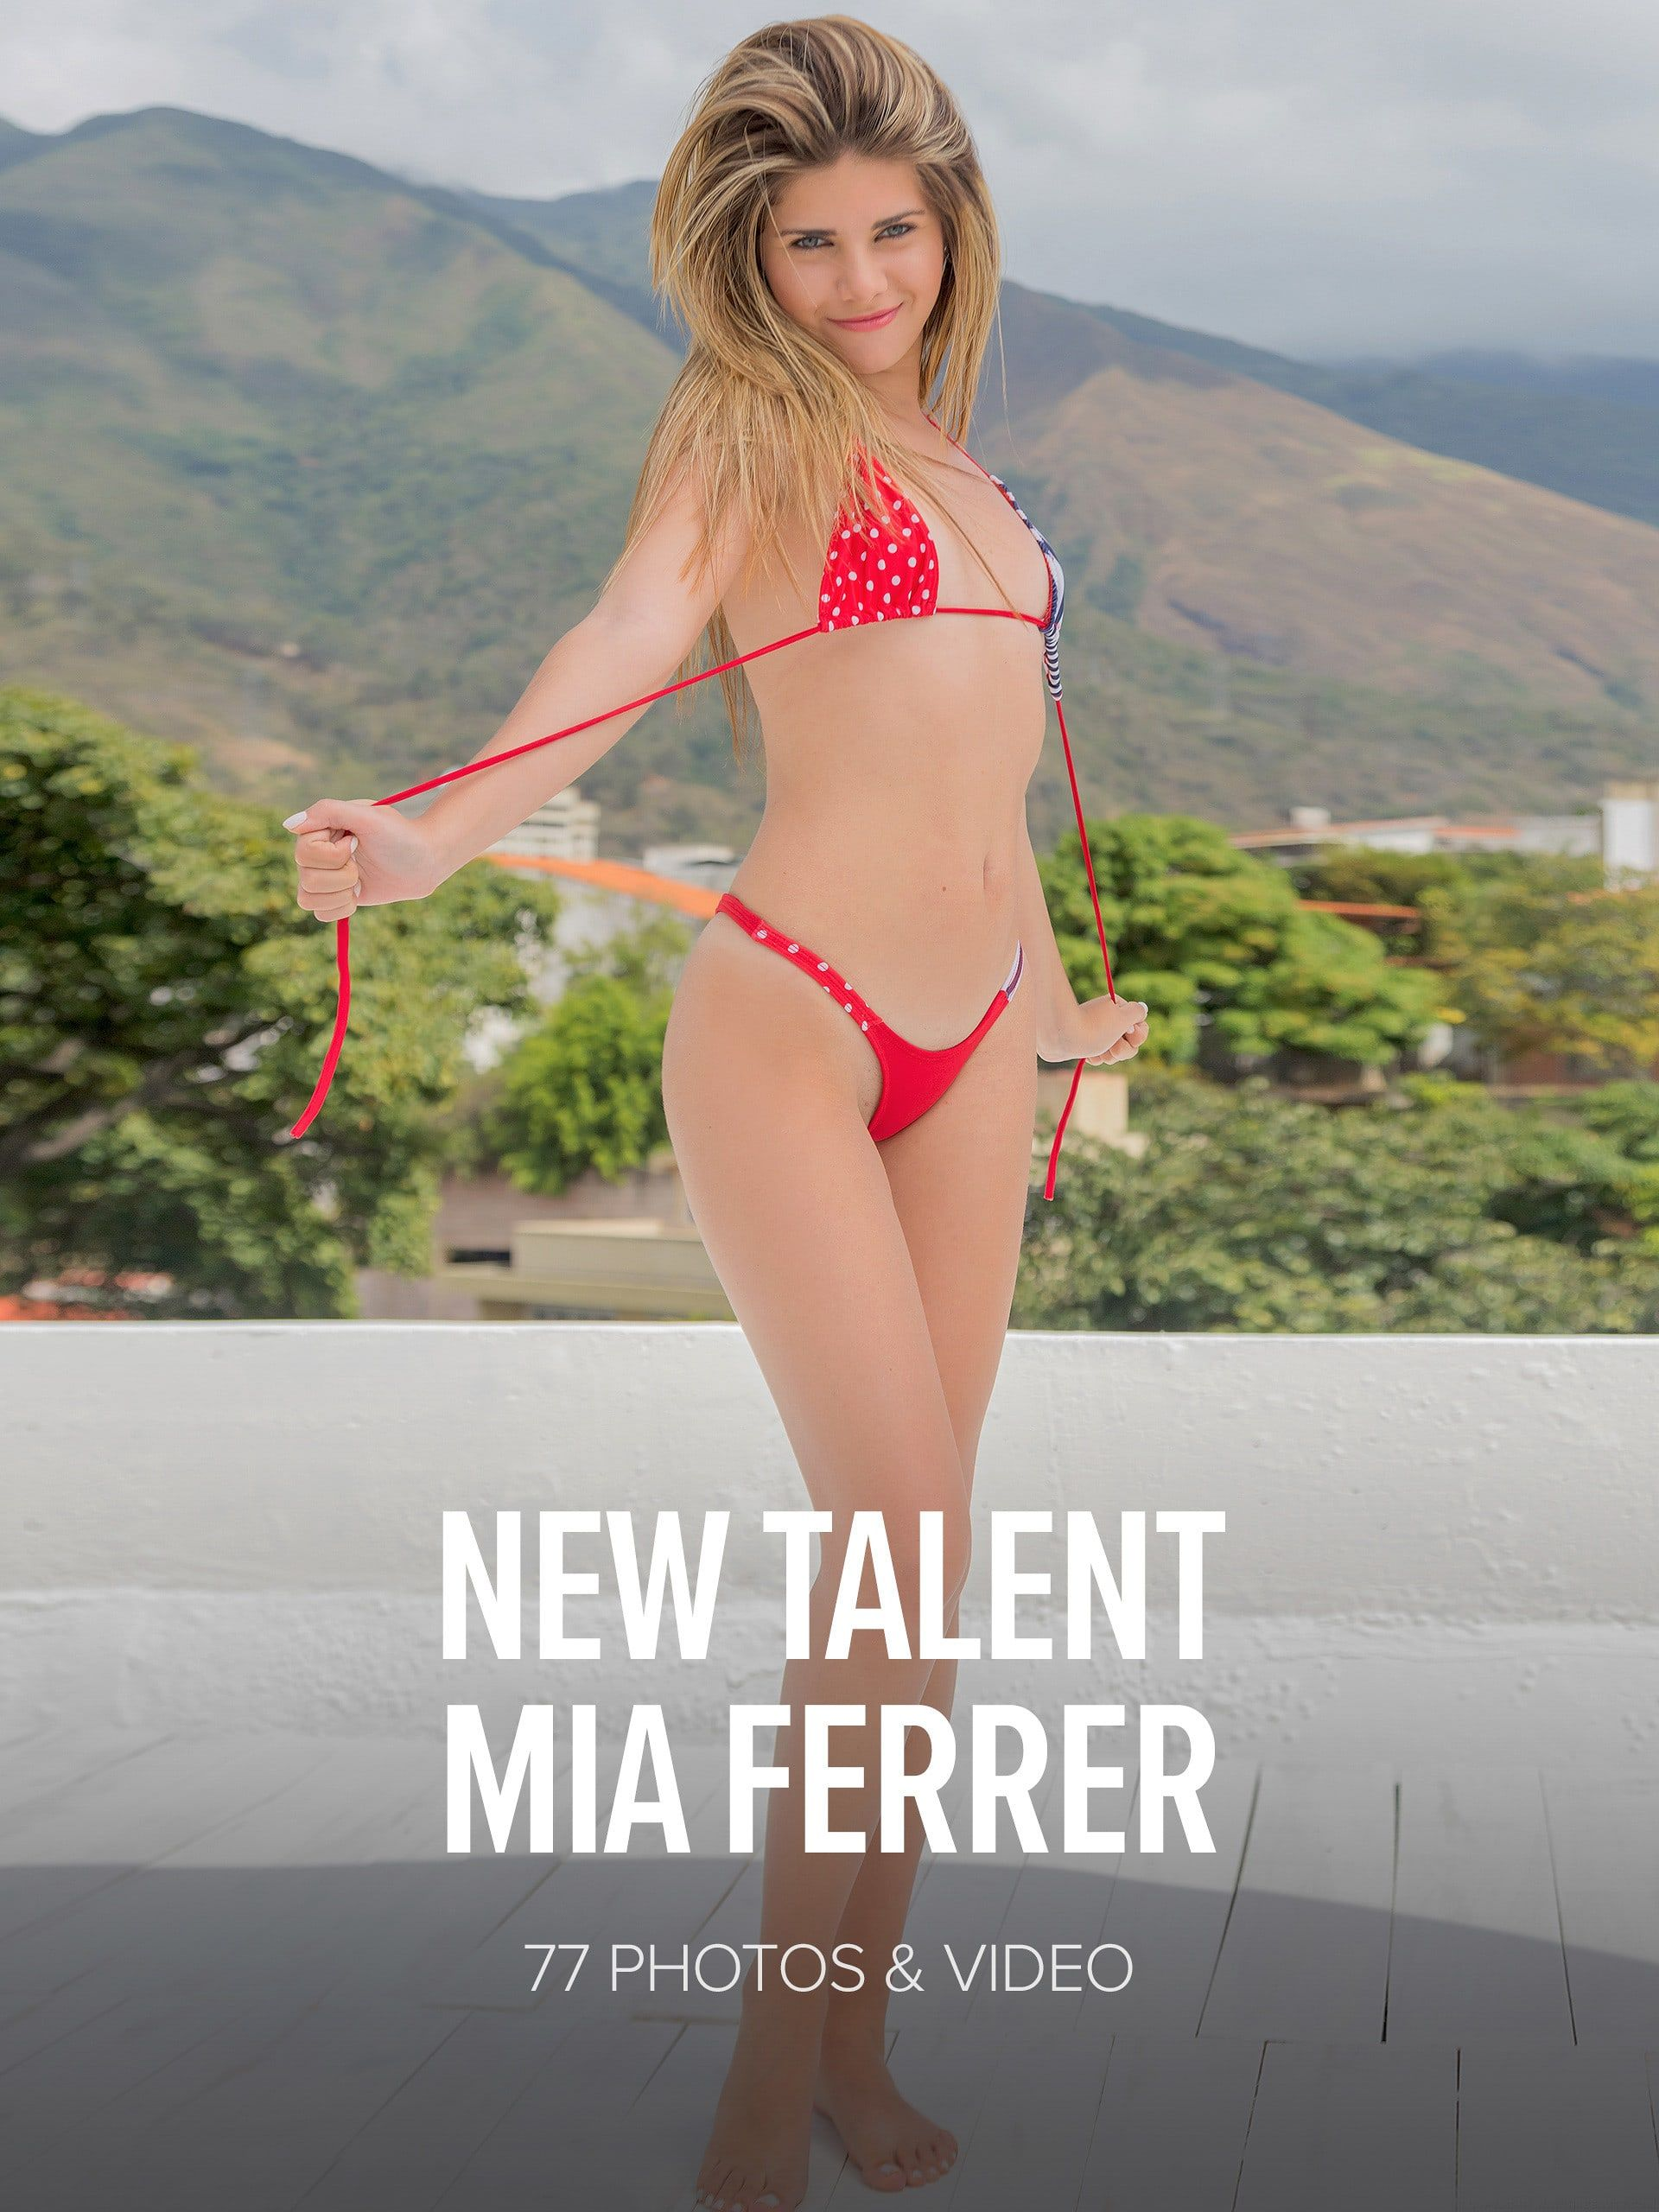 Mia Ferrer New Talent Mia Ferrer